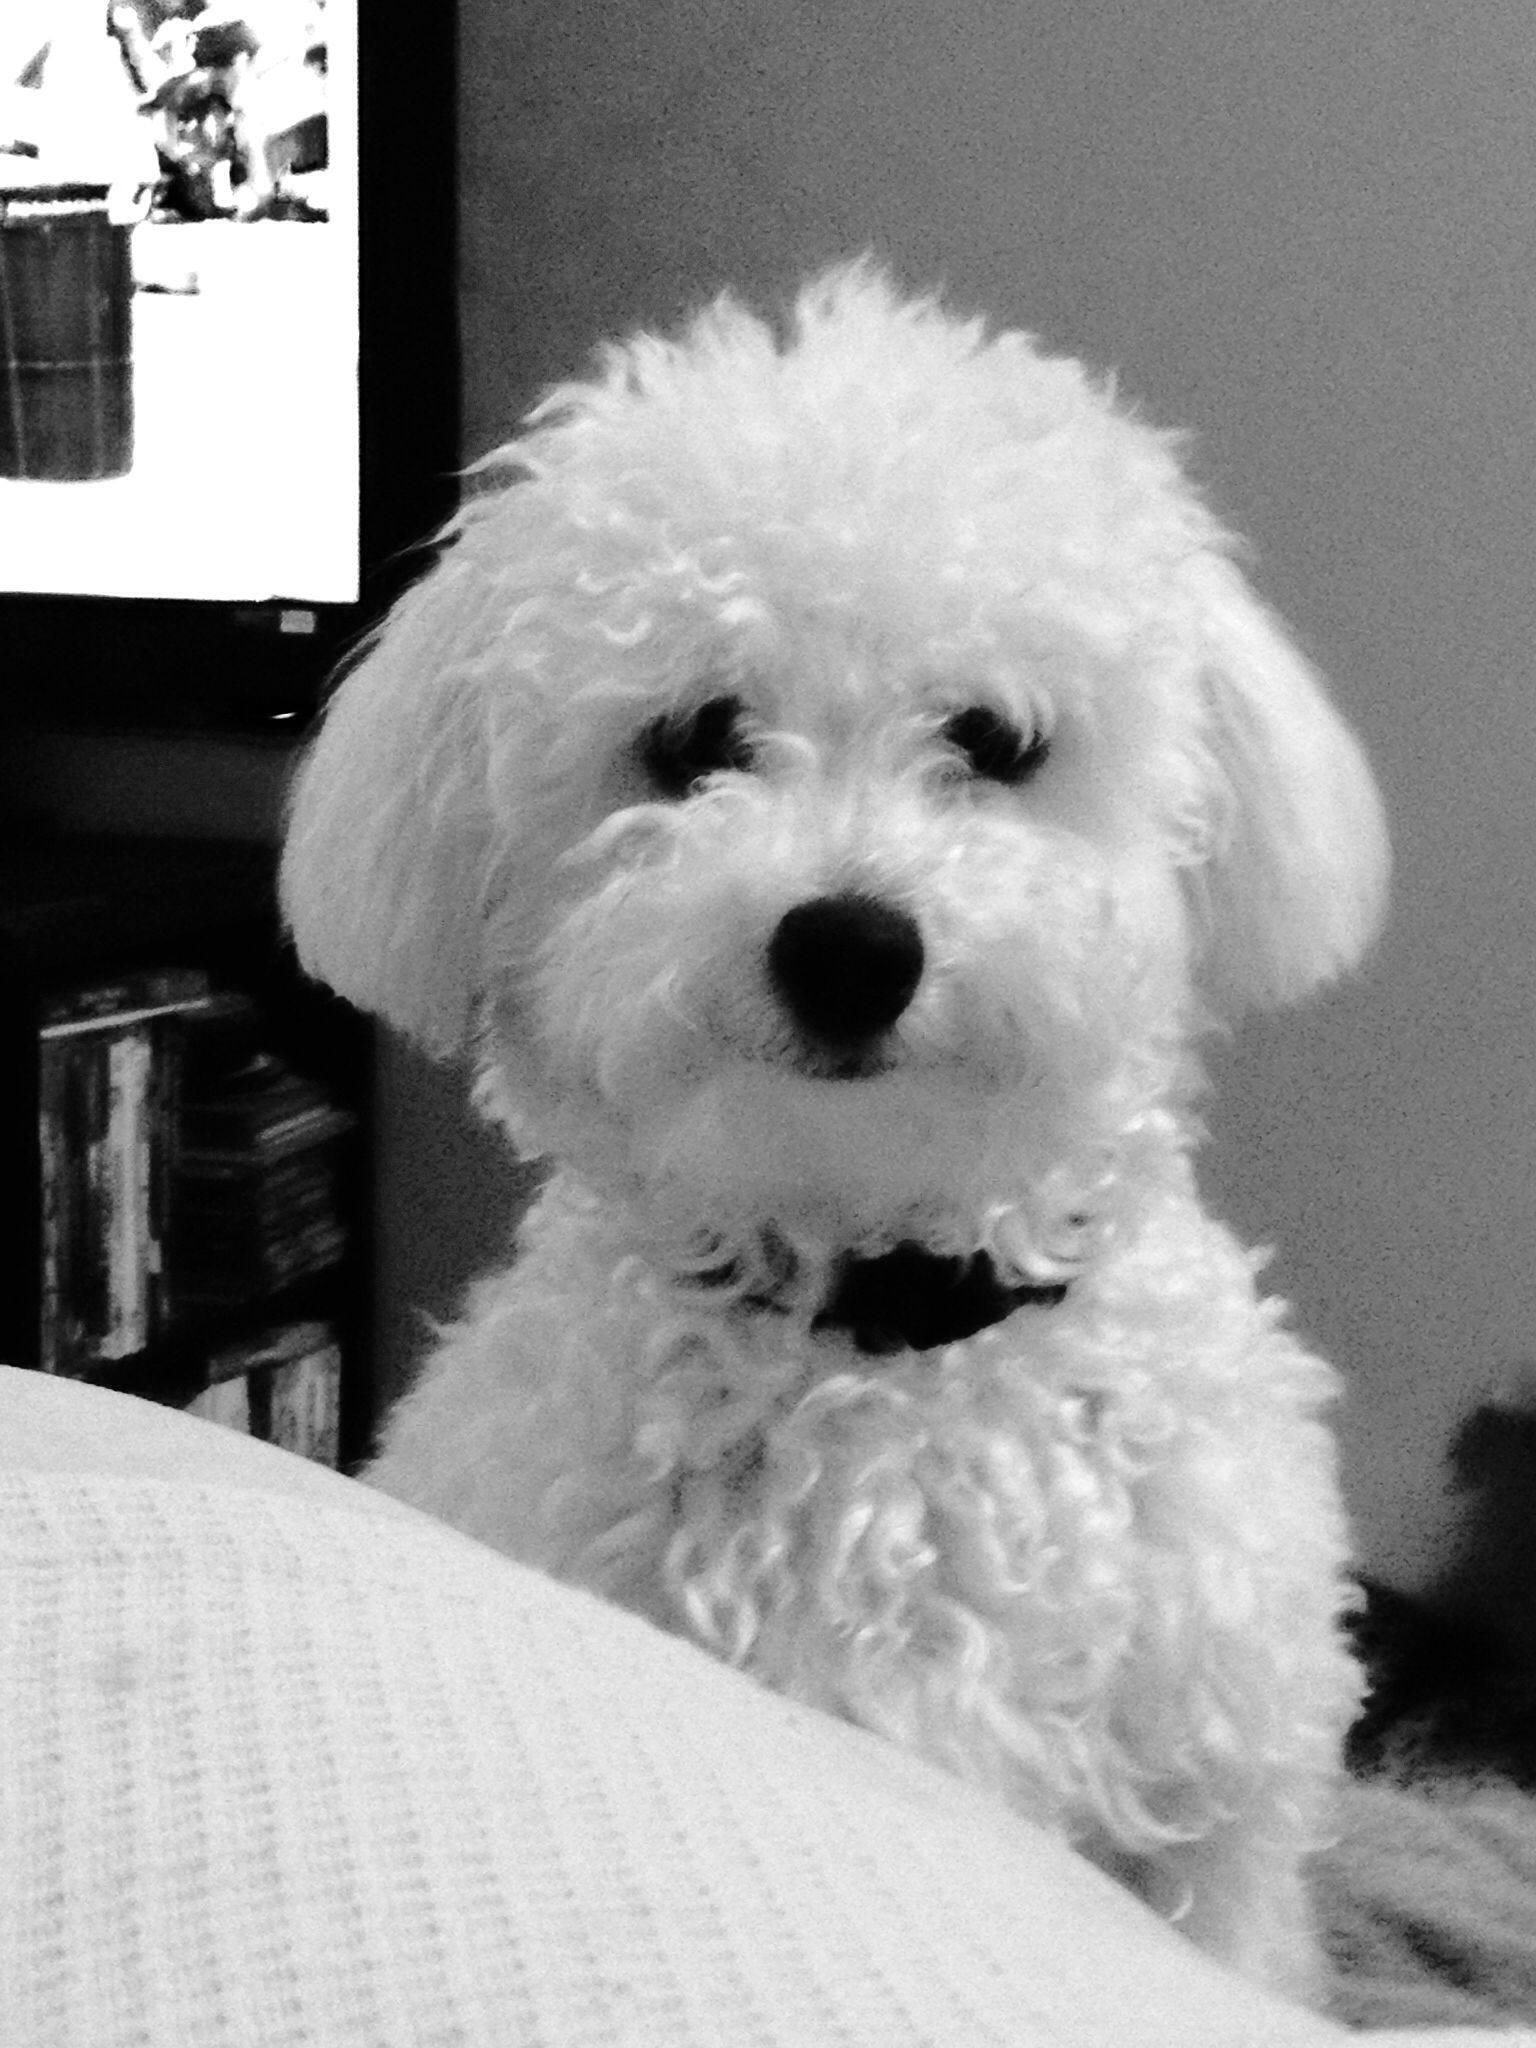 Pierre The Poochon Bichon Frise Dogs Super Cute Dogs Bichon Dog